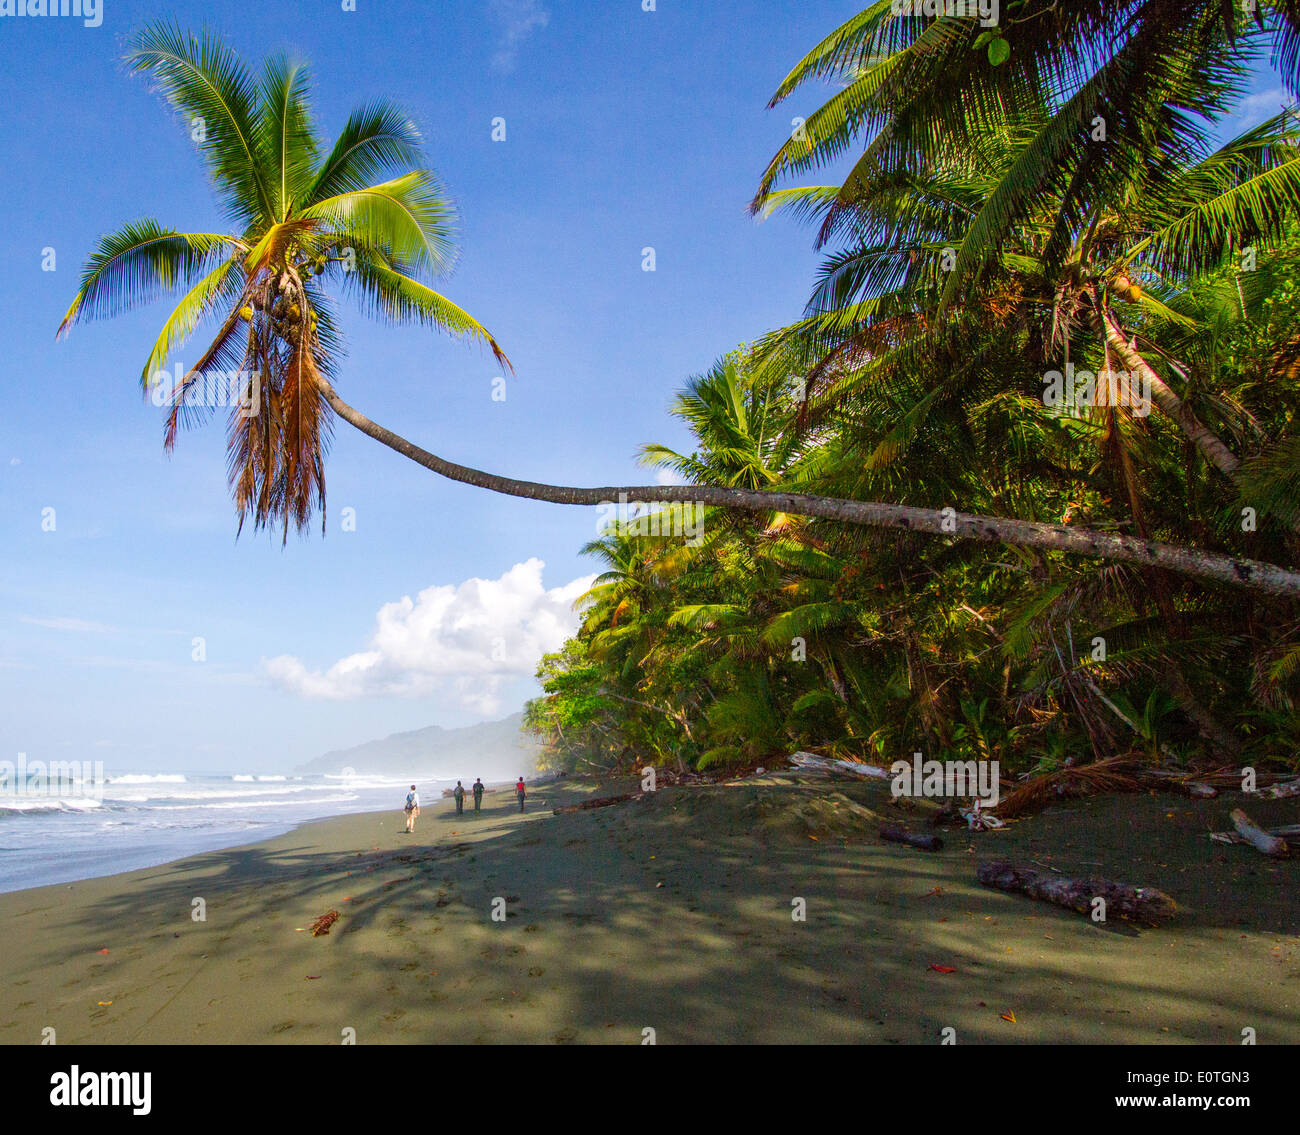 Walking in the Corcovado National Park on the Pacific coast of Costa Rica - Stock Image